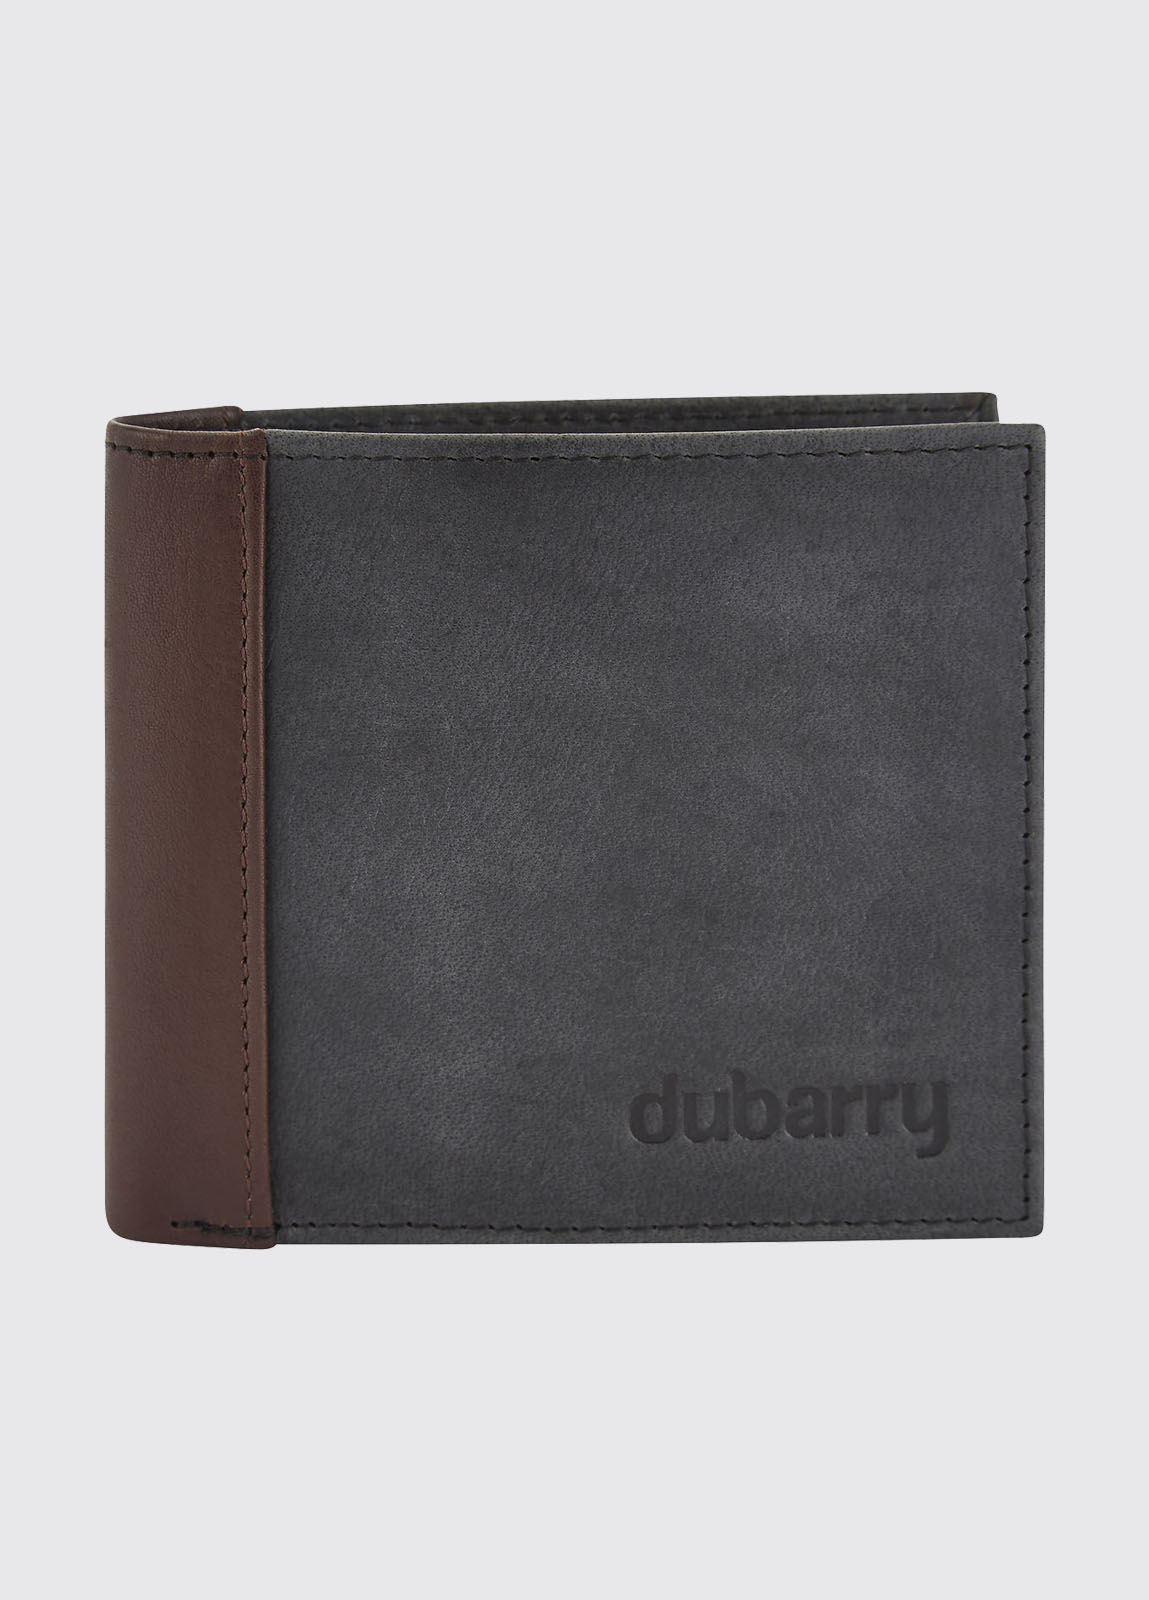 Rosmuc Leather Wallet - Black/Brown